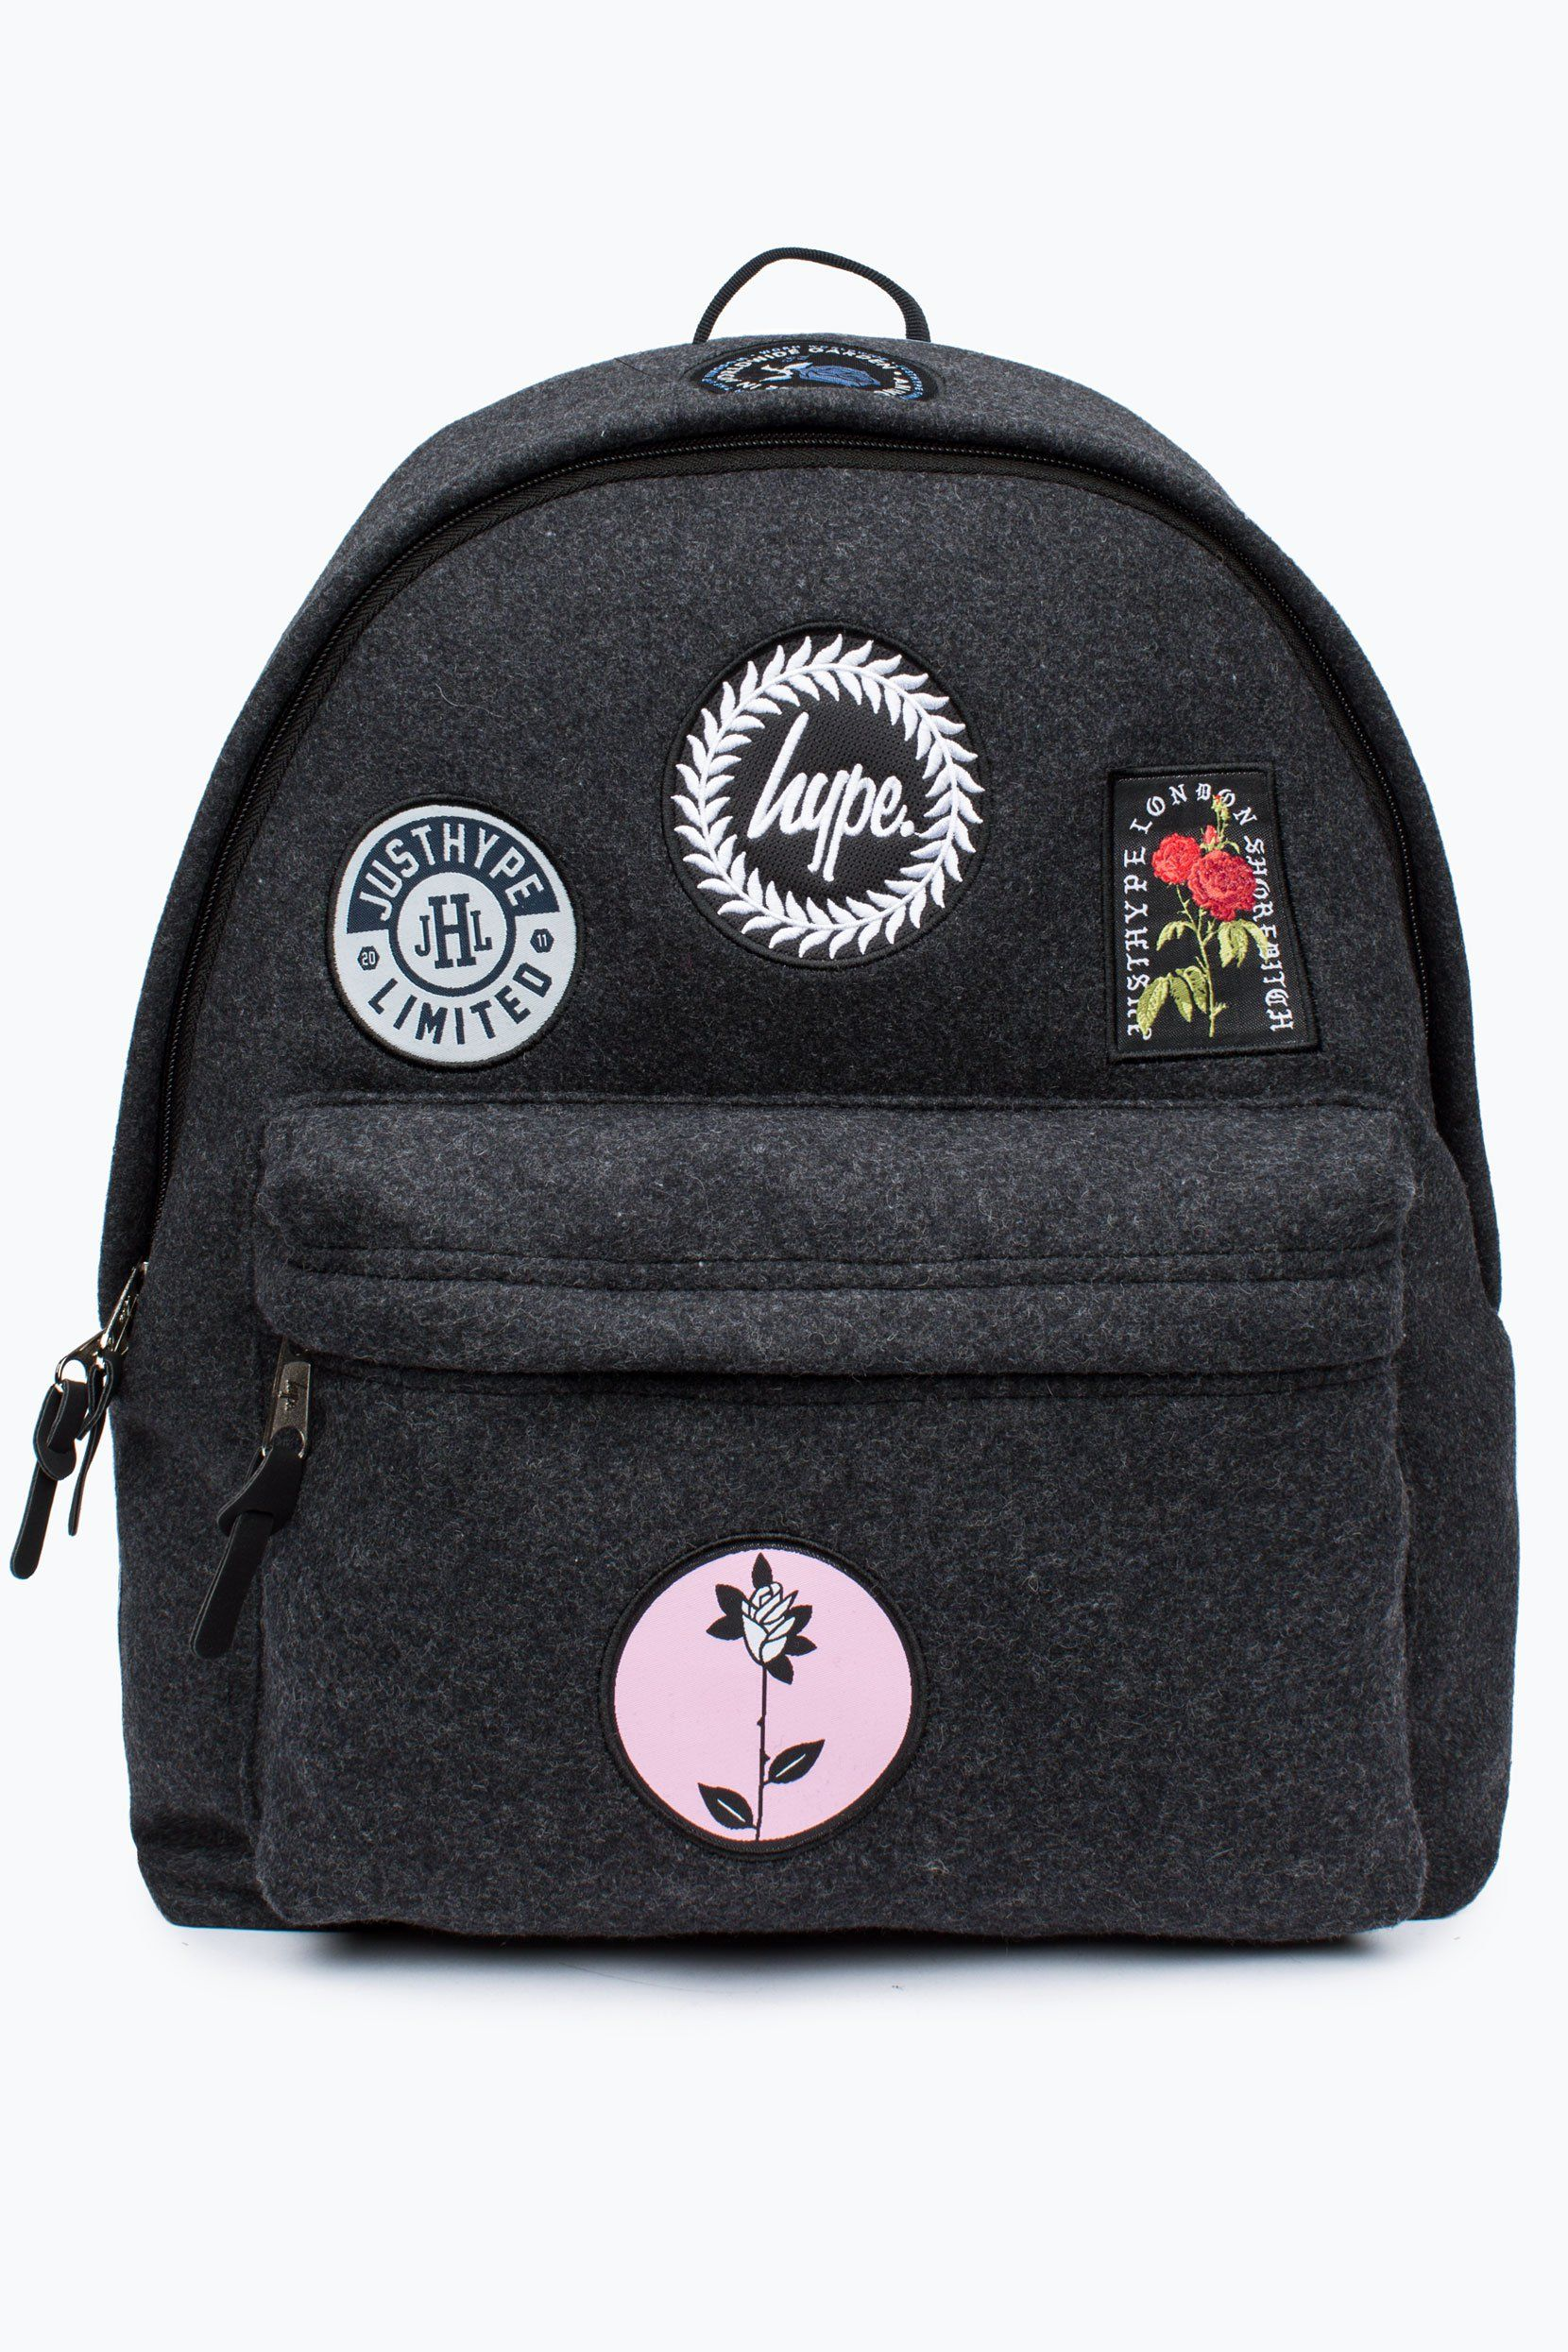 5fc06a0a90 HYPE GREY PATCH STASH BACKPACK